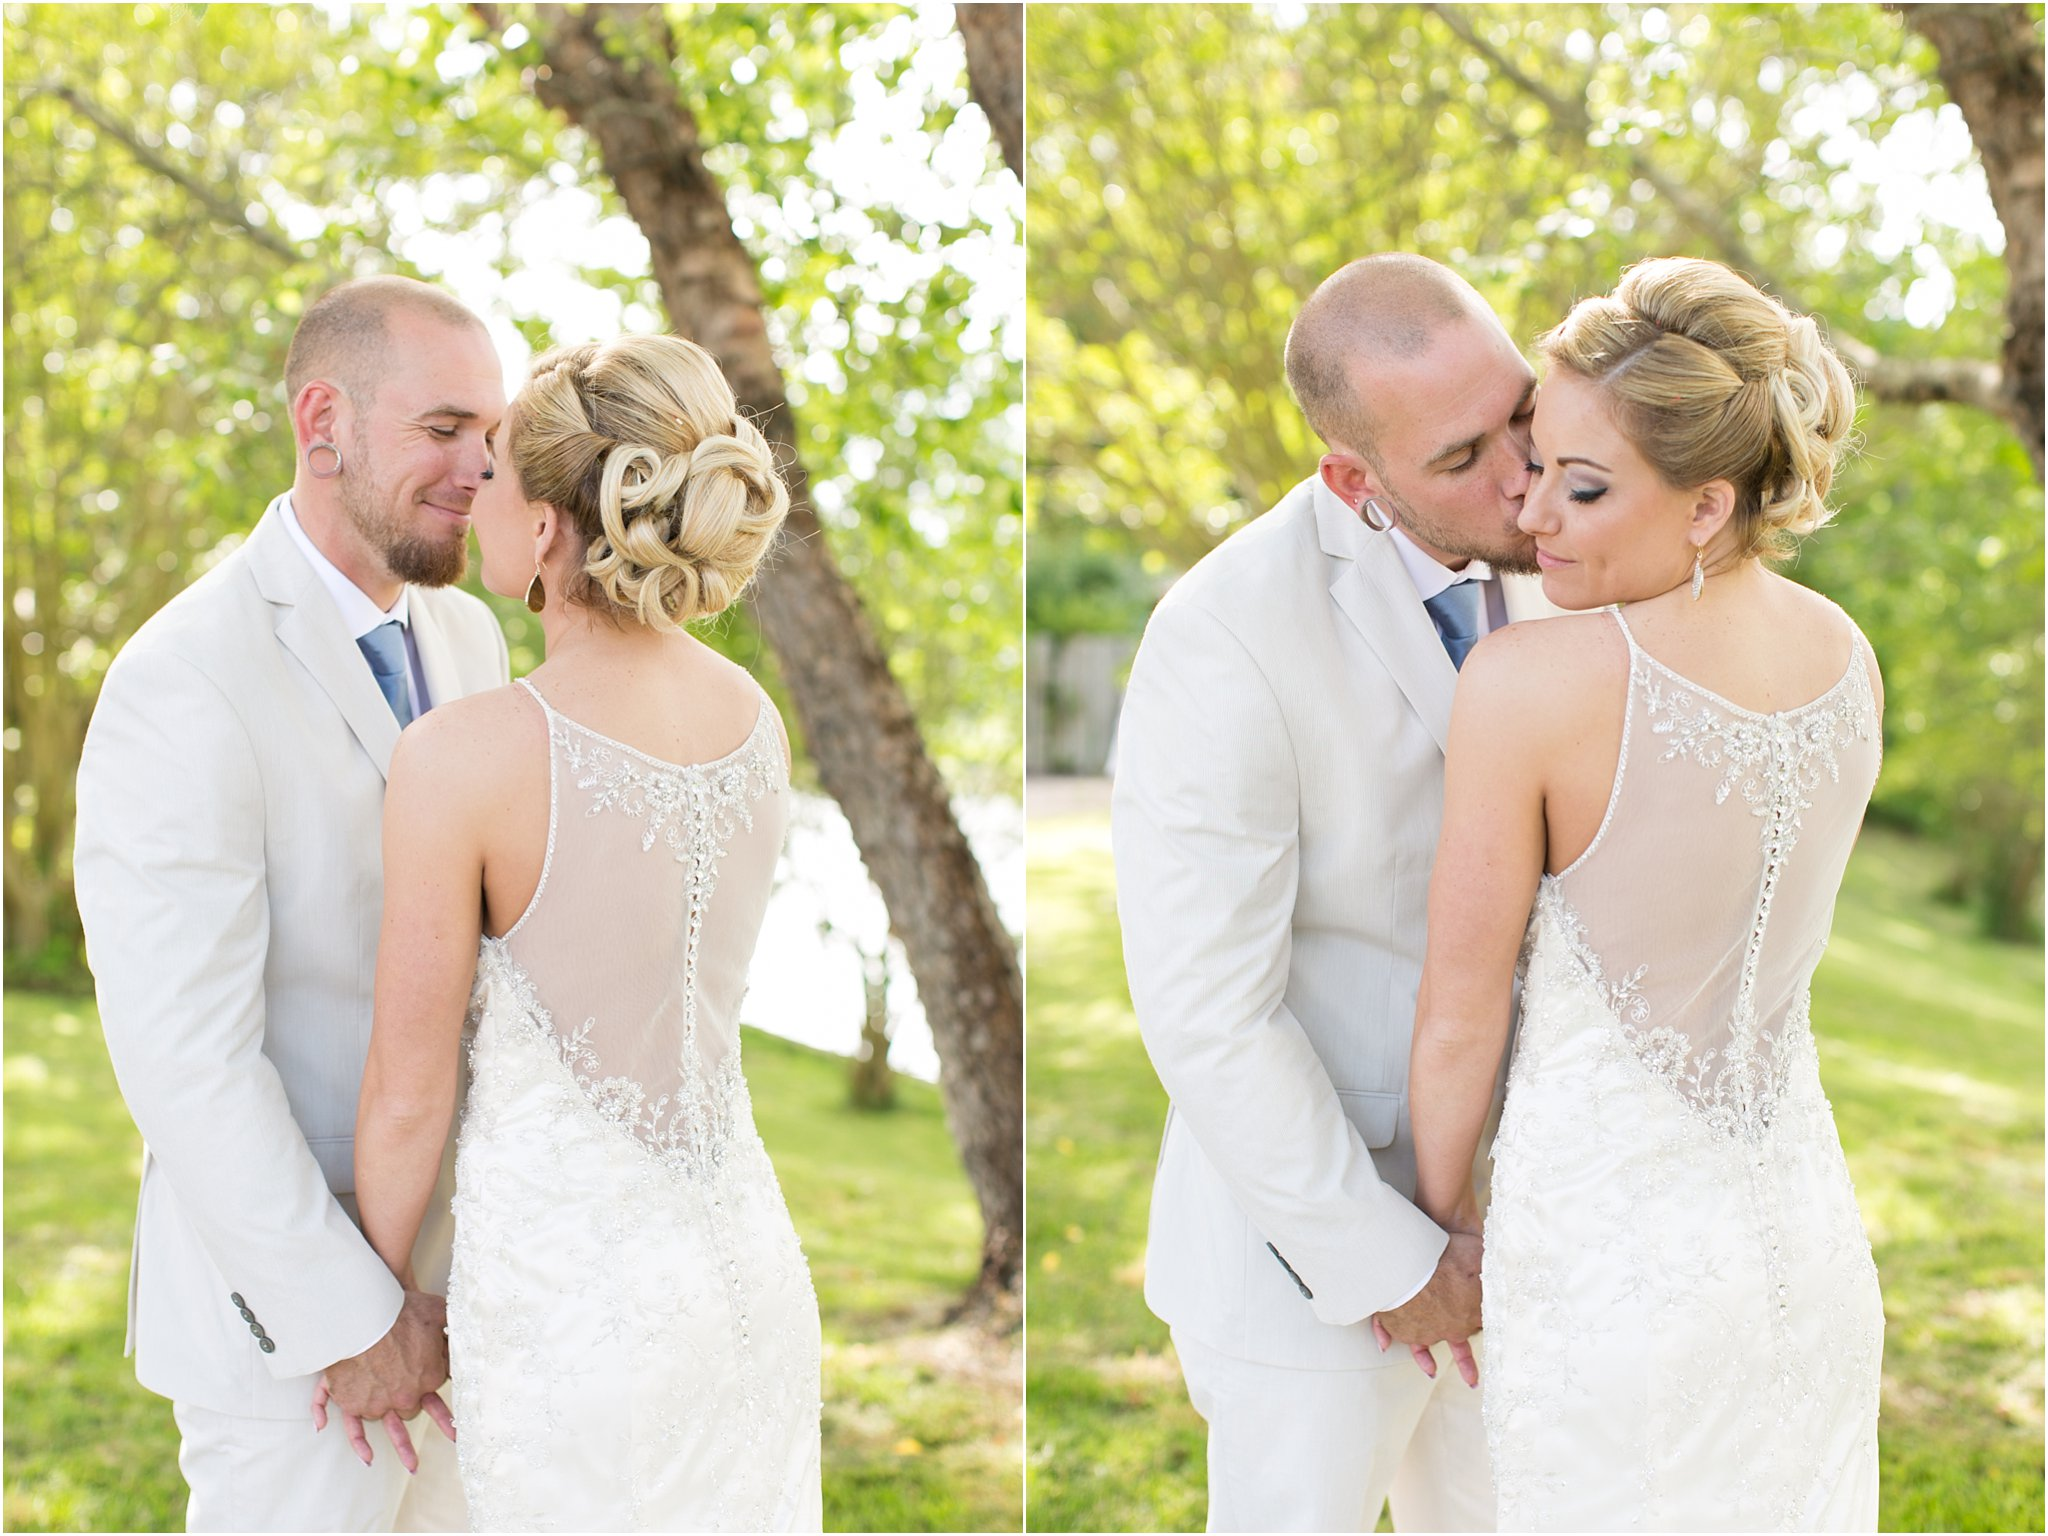 jessica_ryan_photography_virginia_virginiabeachweddingphotographer_studioIdo_backyardwedding_waterfrontwedding_1681